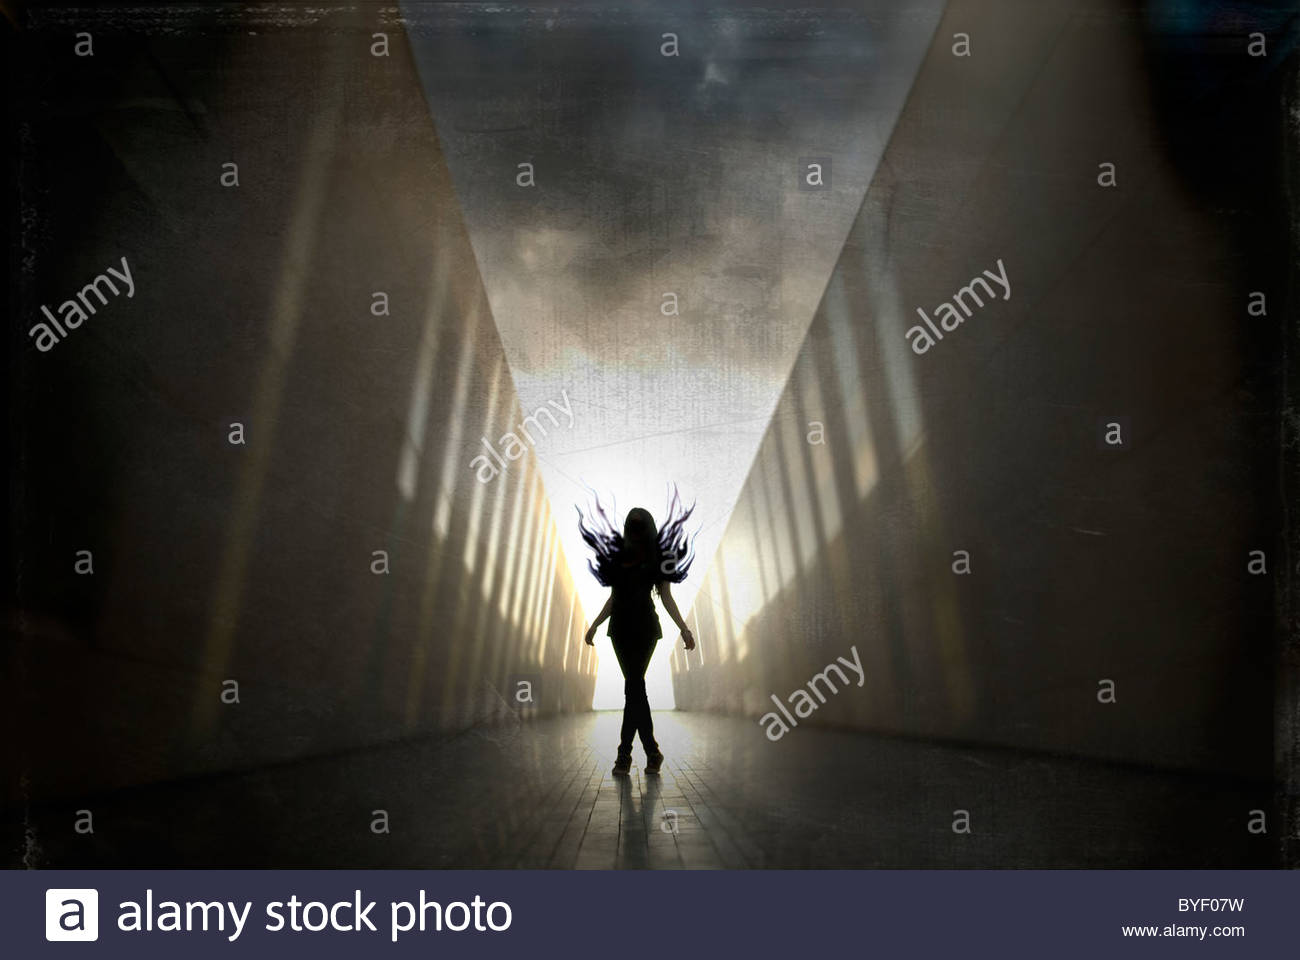 Female youth standing alone in tunnel - Stock Image